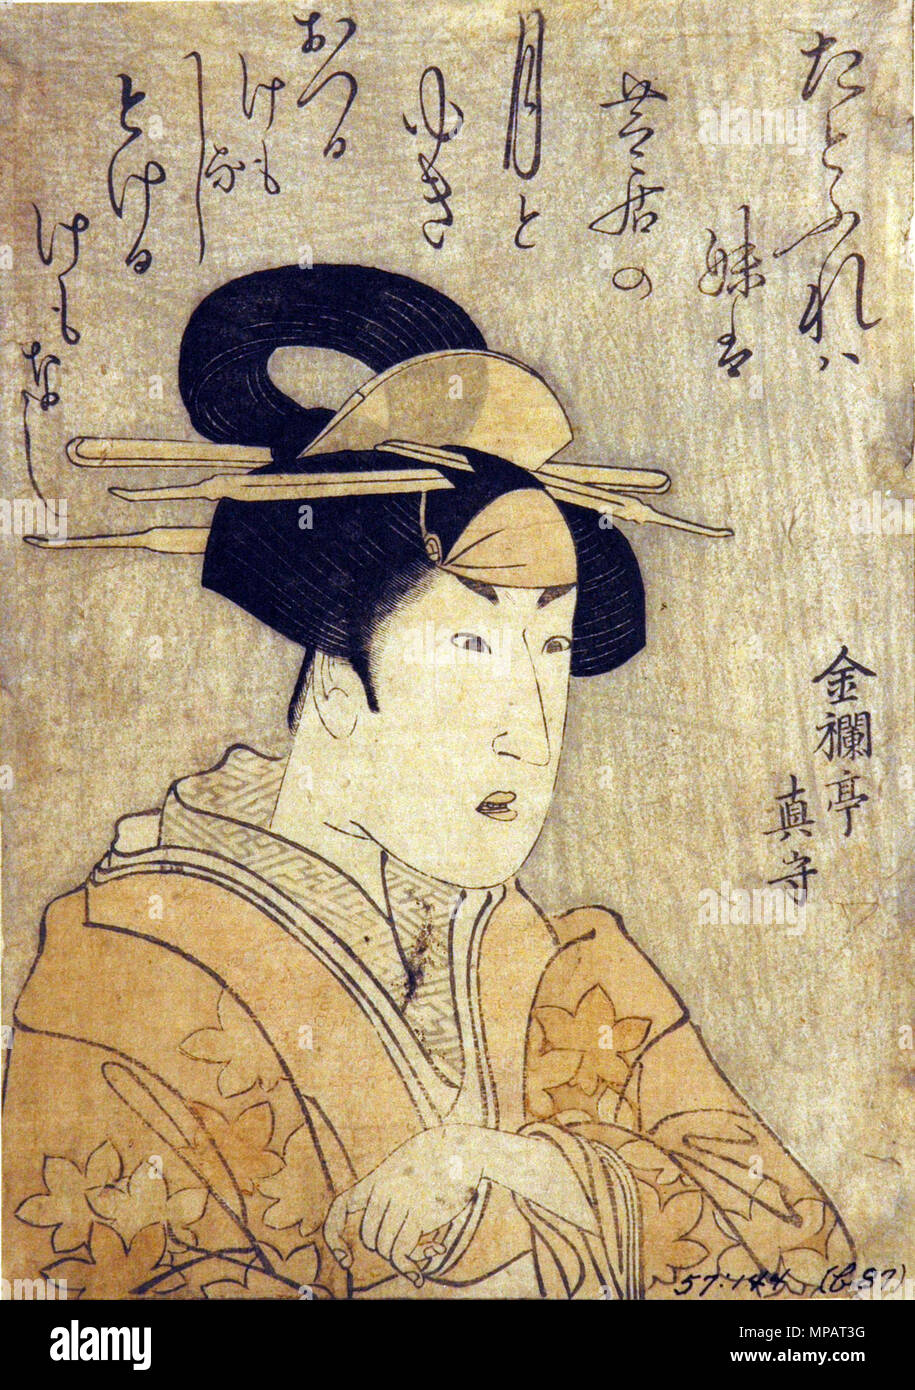 . English: Accession Number: 1957.144 Display Artist: Utagawa Toyokuni Display Title: Segawa Kikunojo III (?) Series Title: Mirror of Actor Comparisons Suite Name: Yakusha awase kagami Creation Date: 1804 Medium: Woodblock Height: 8 3/8 in. Width: 6 in. Display Dimensions: 8 3/8 in. x 6 in. (21.27 cm x 15.24 cm) Publisher: Yamadaya Sanshiro Credit Line: Bequest of Mrs. Cora Timken Burnett Collection: <a href='http://www.sdmart.org/art/our-collection/asian-art' rel='nofollow'>The San Diego Museum of Art</a> . 29 January 2008, 16:03:52. English: thesandiegomuseumofartcollection 1109 Segawa Kikun Stock Photo